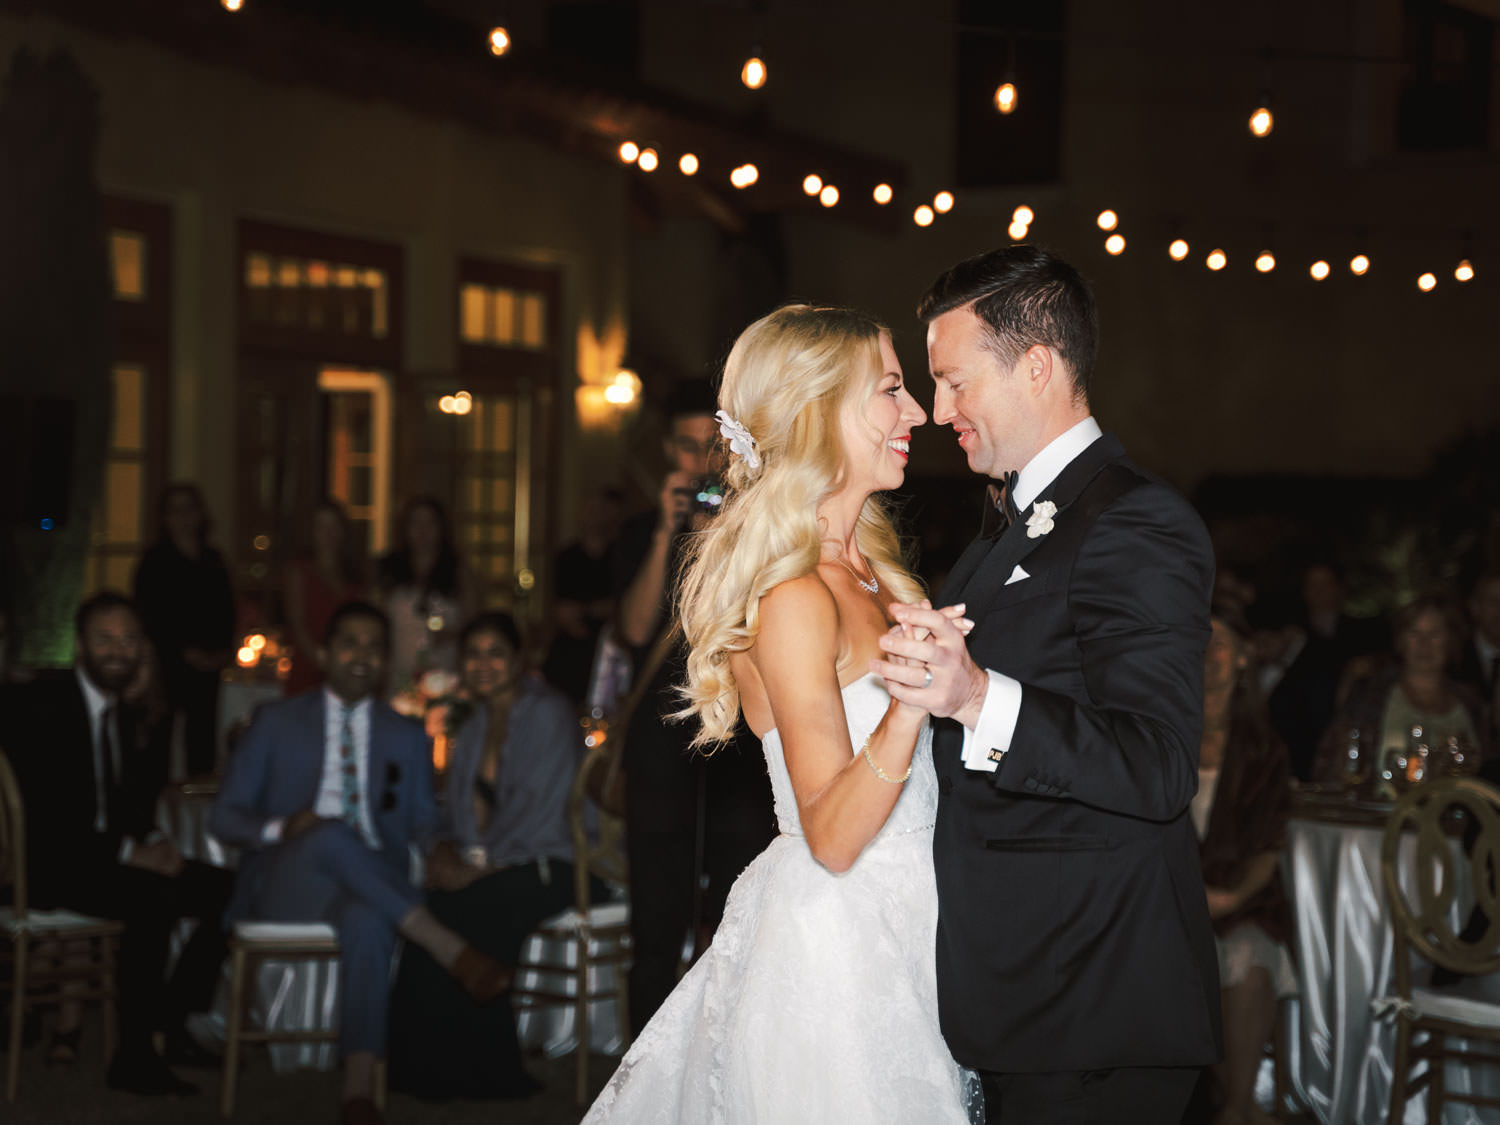 Bride and groom first dance. Miramonte Resort wedding reception. Photography by Cavin Elizabeth.